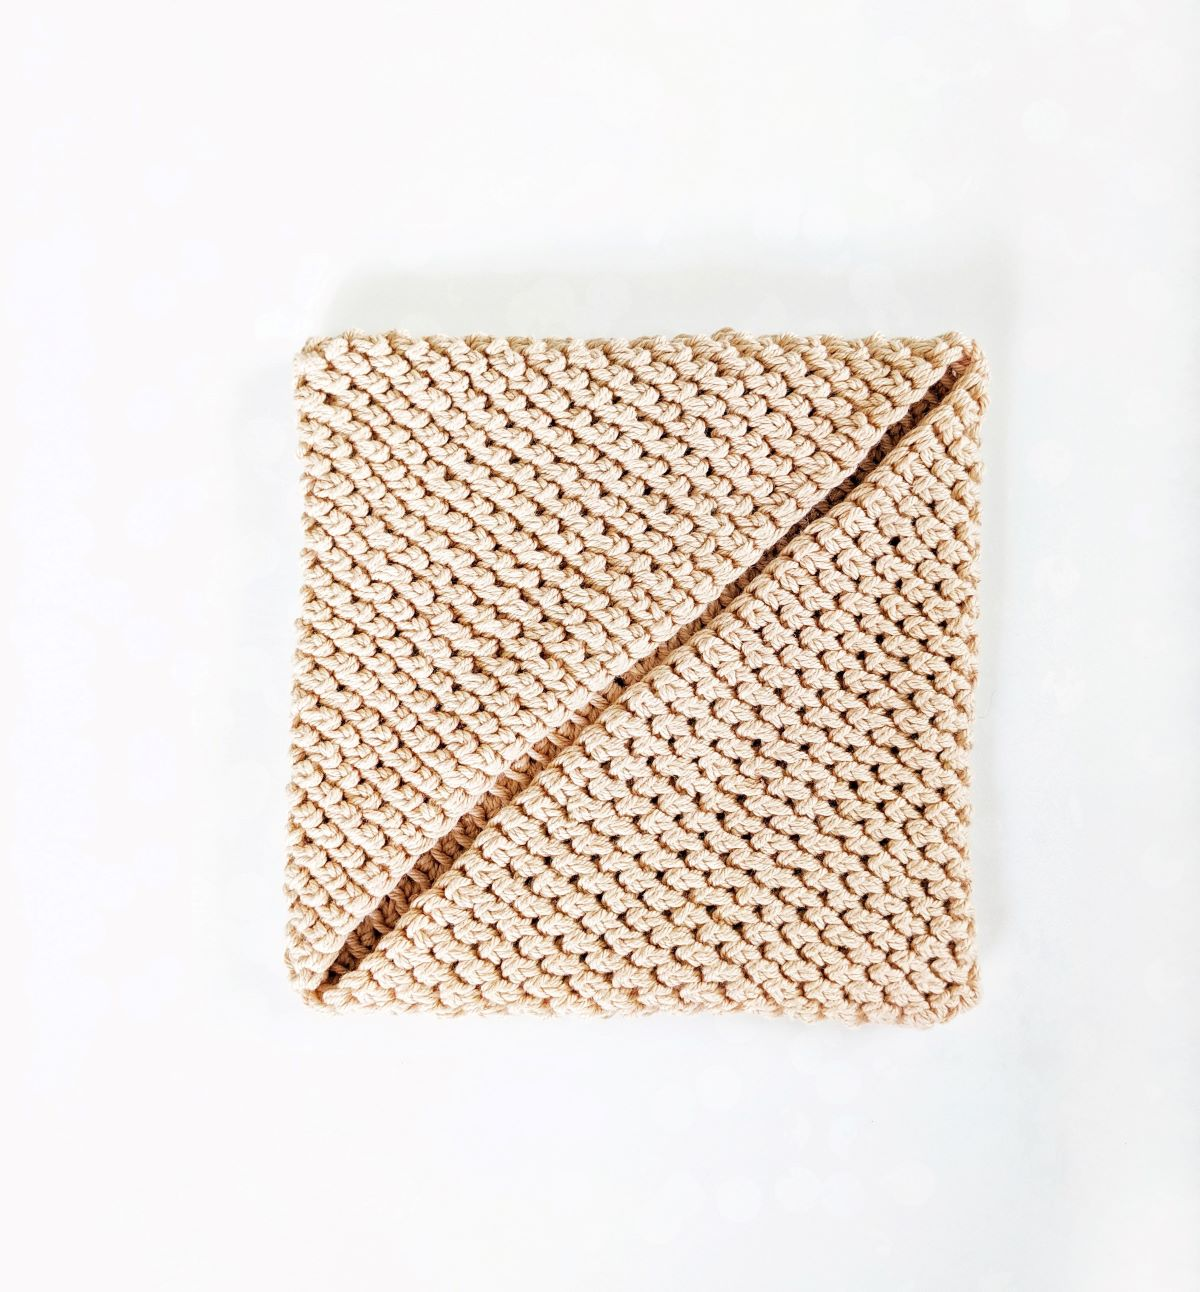 a crochet potholder that needs to be seamed together